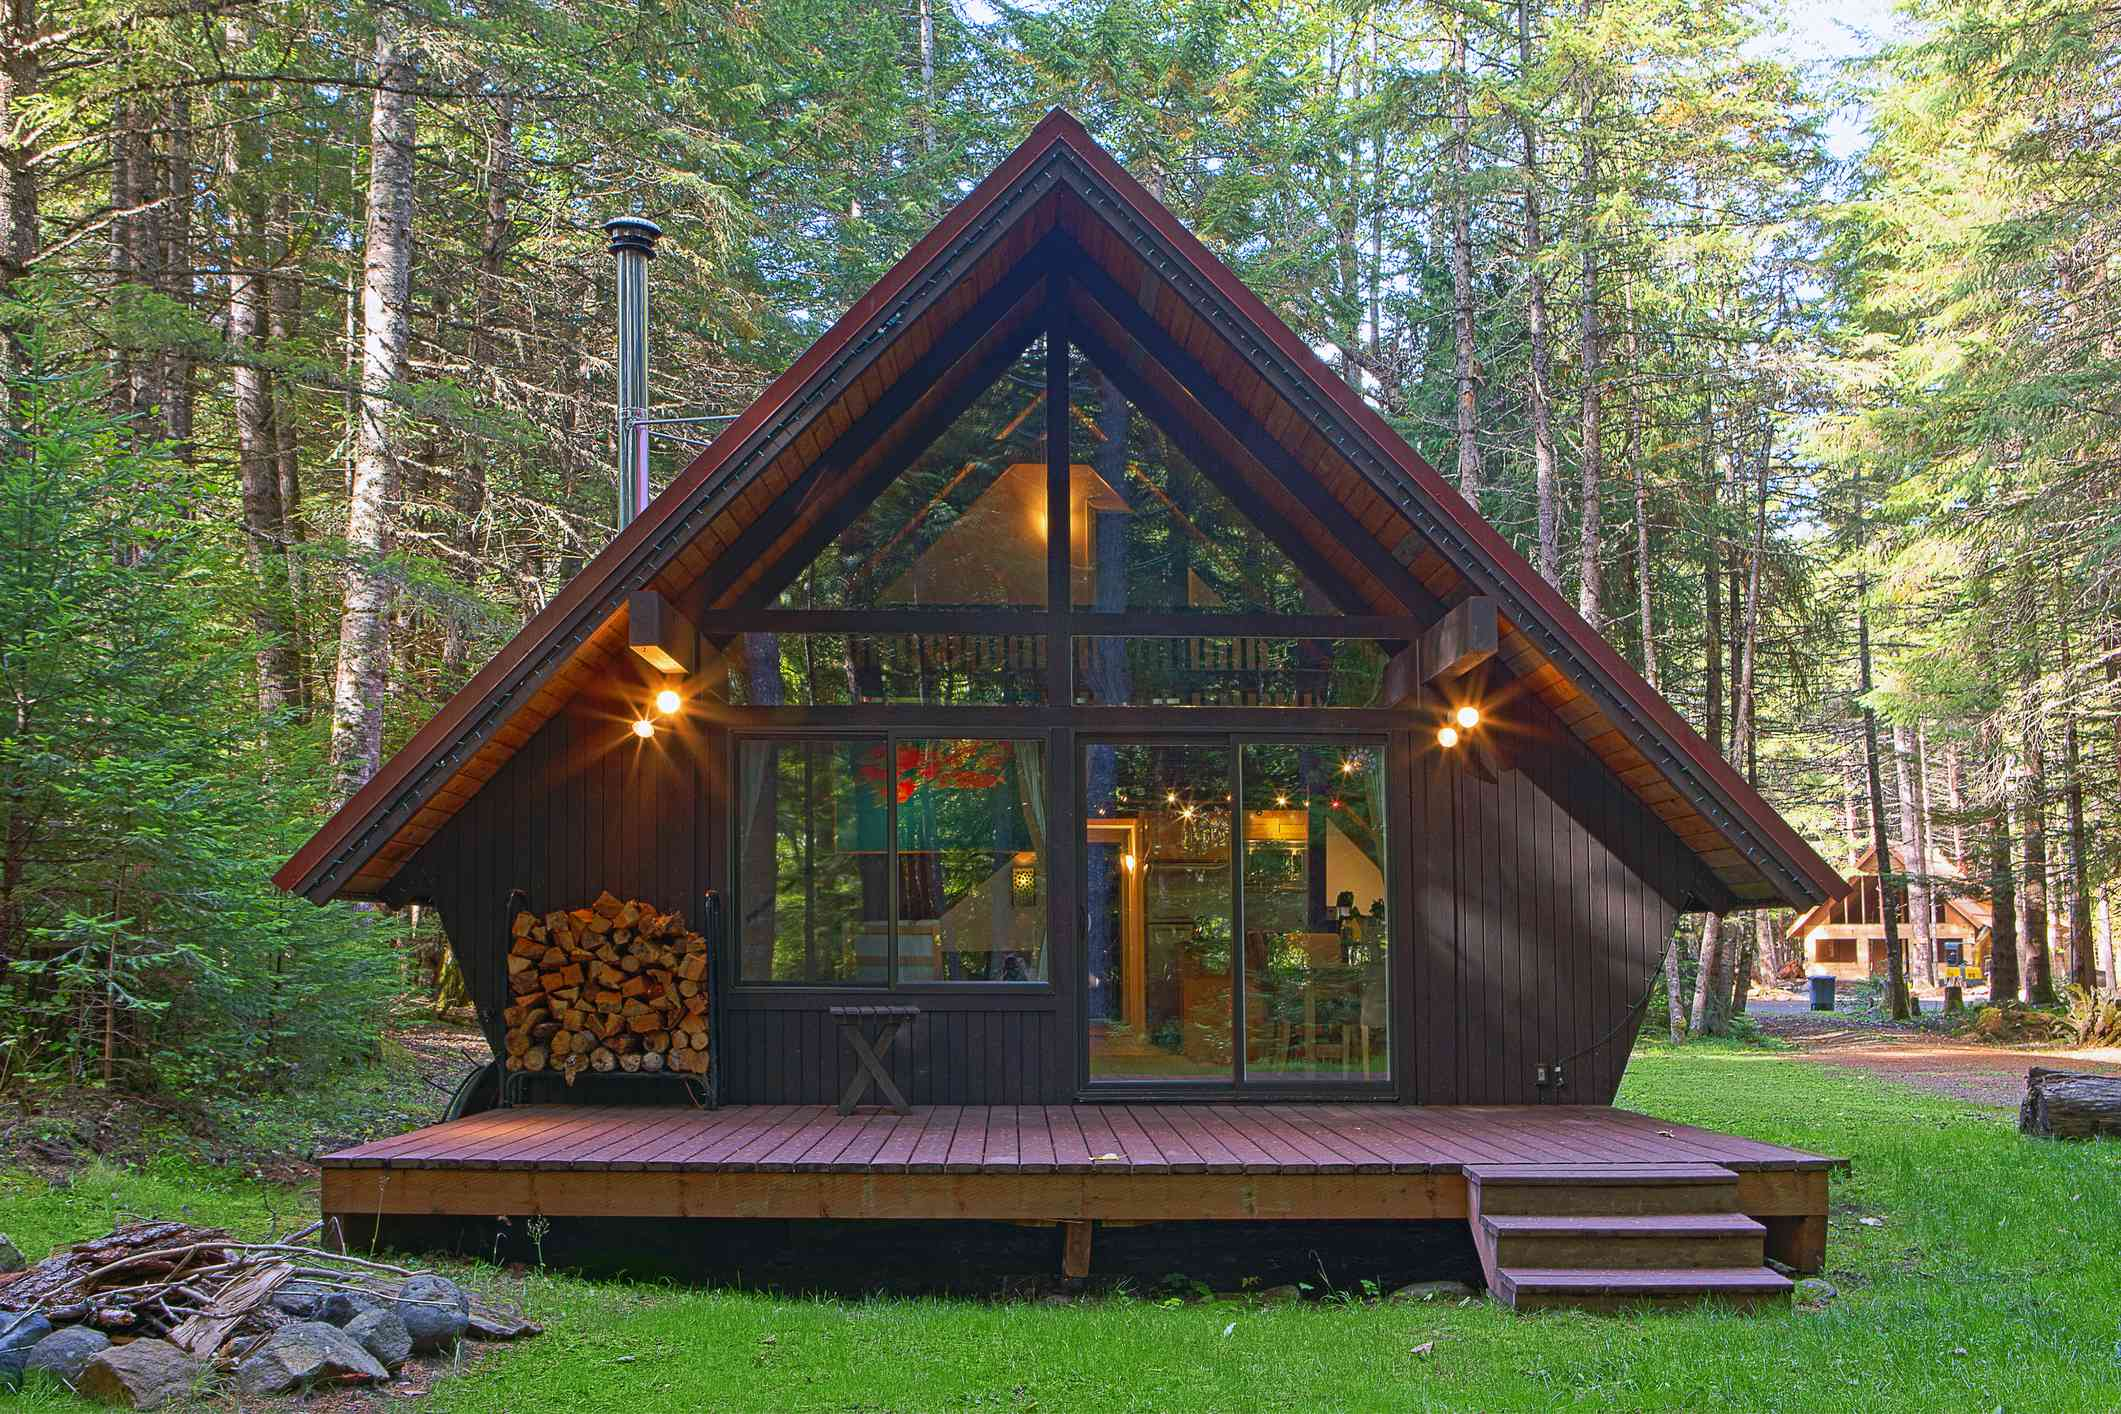 Modern cabin with backyard in forest